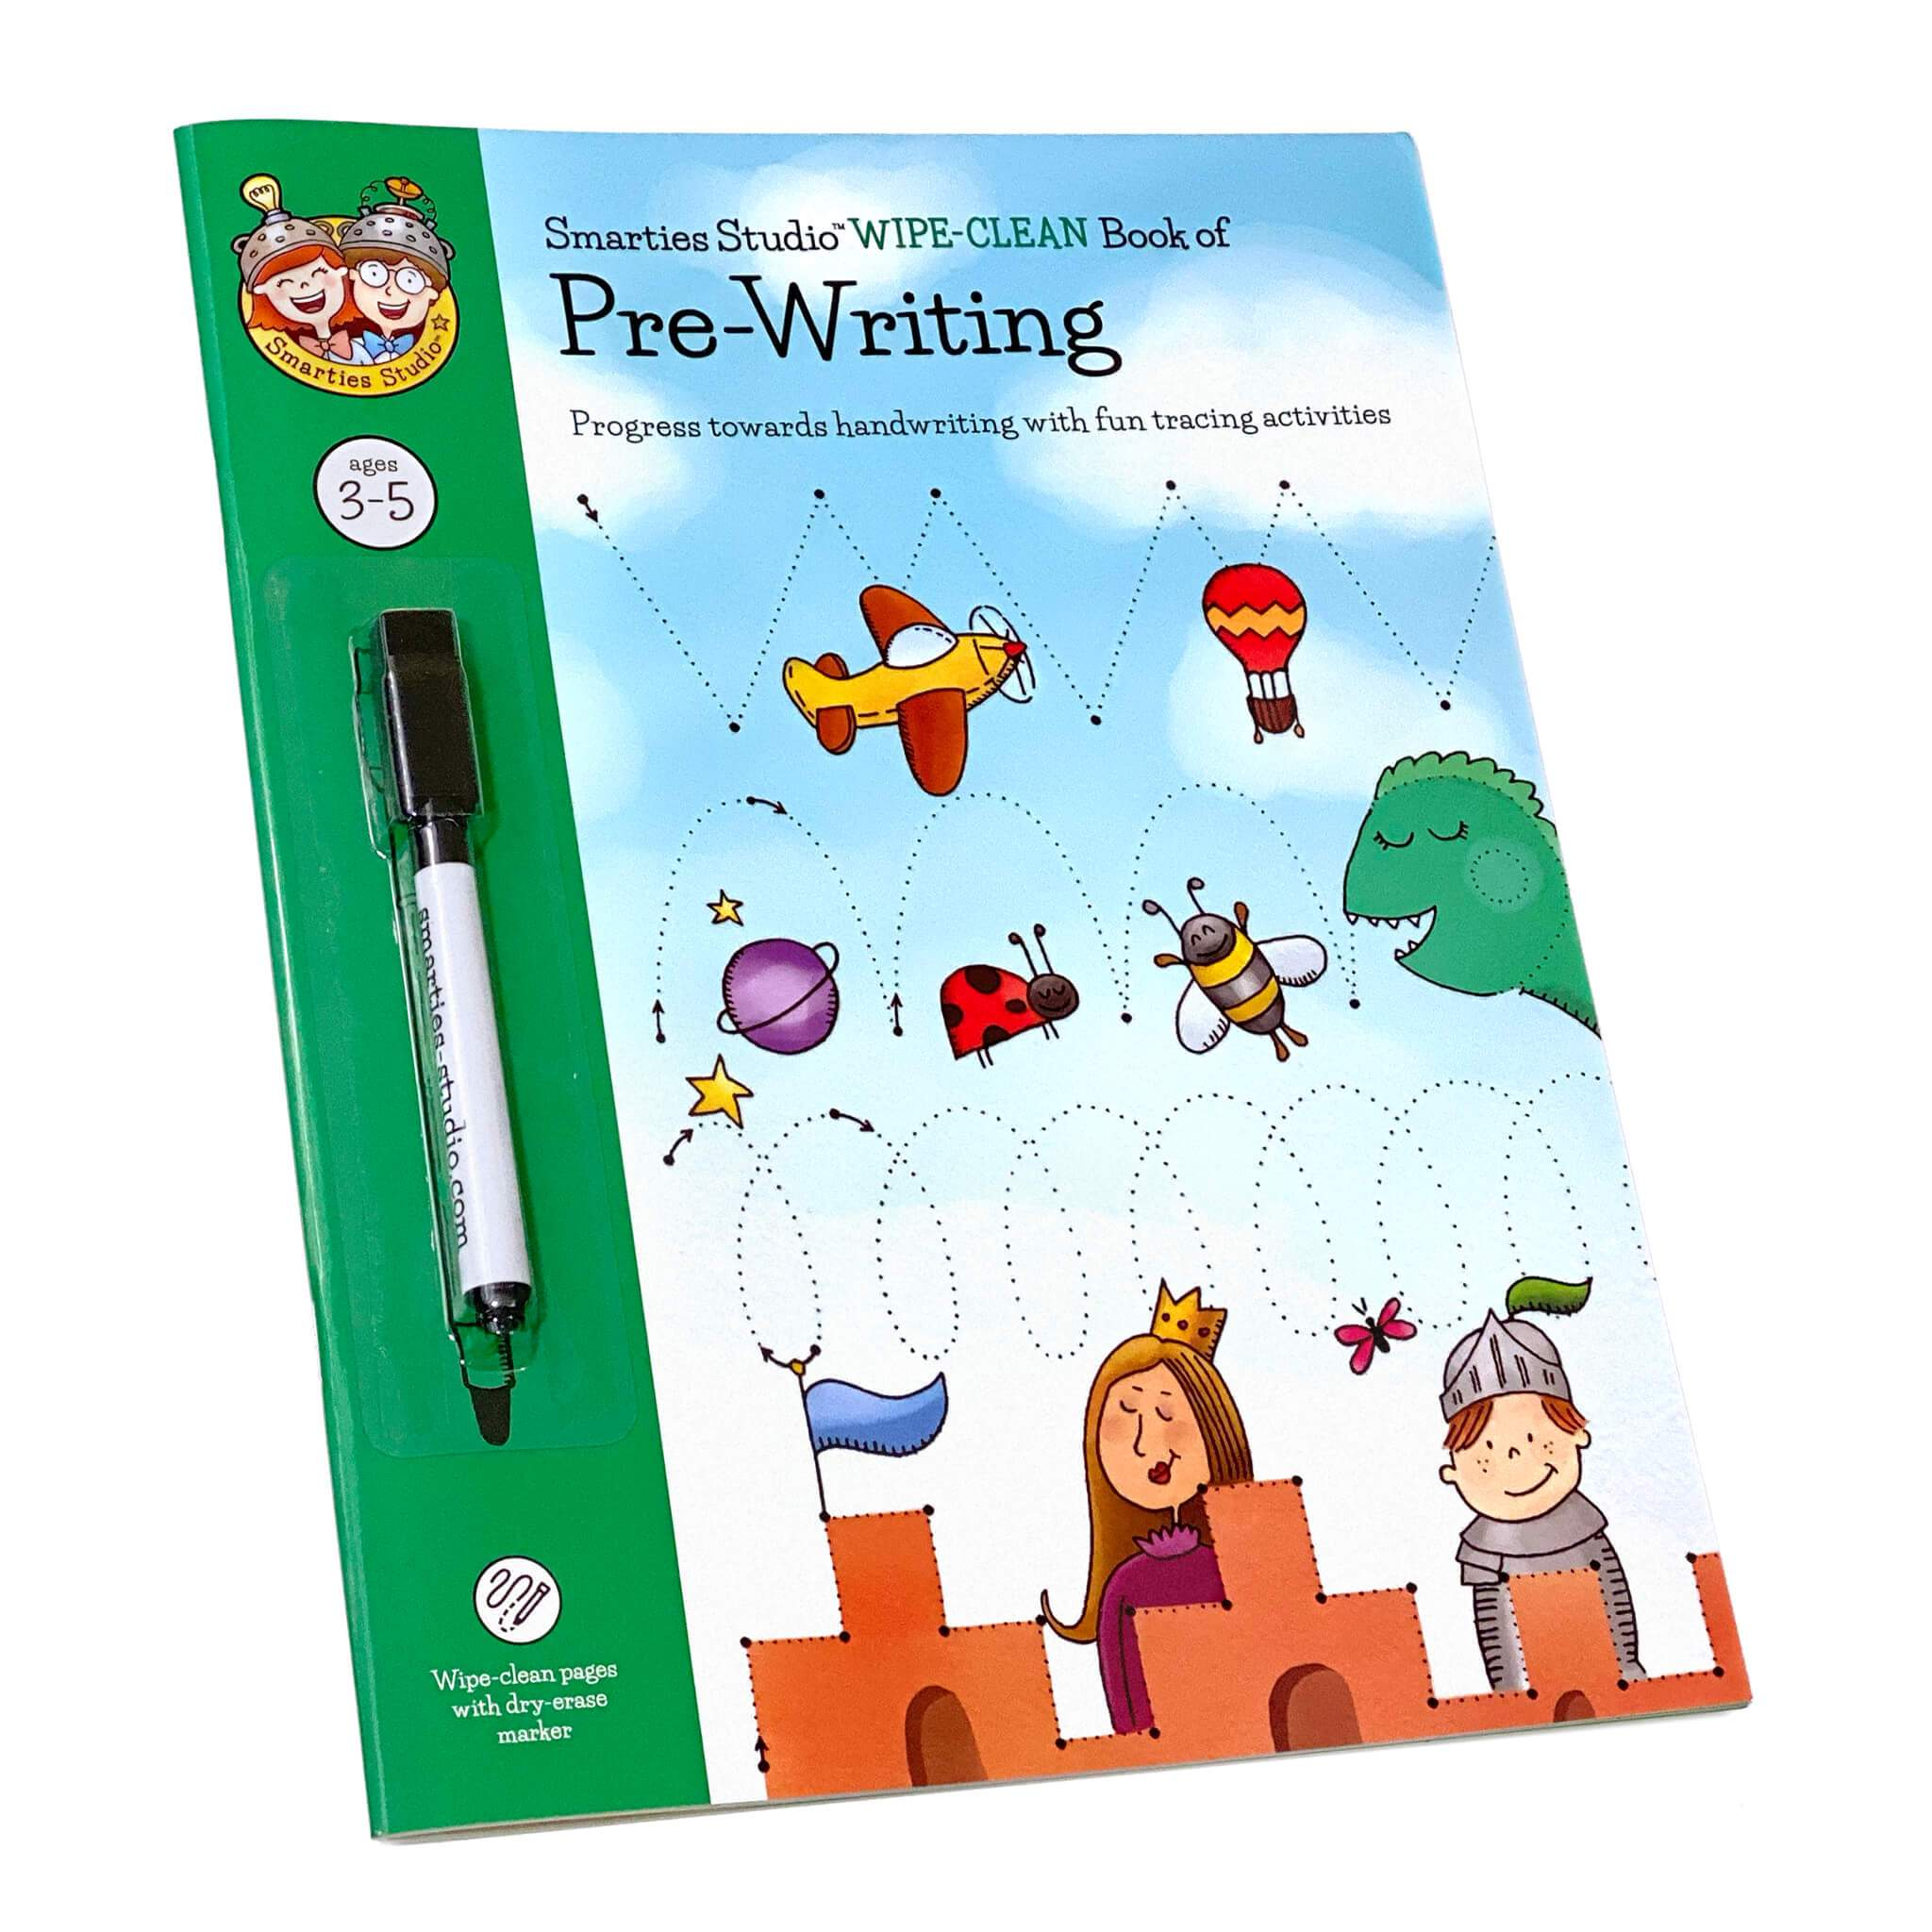 Smarties Studio Wipe Clean Book of Pre-Writing - Front Cover